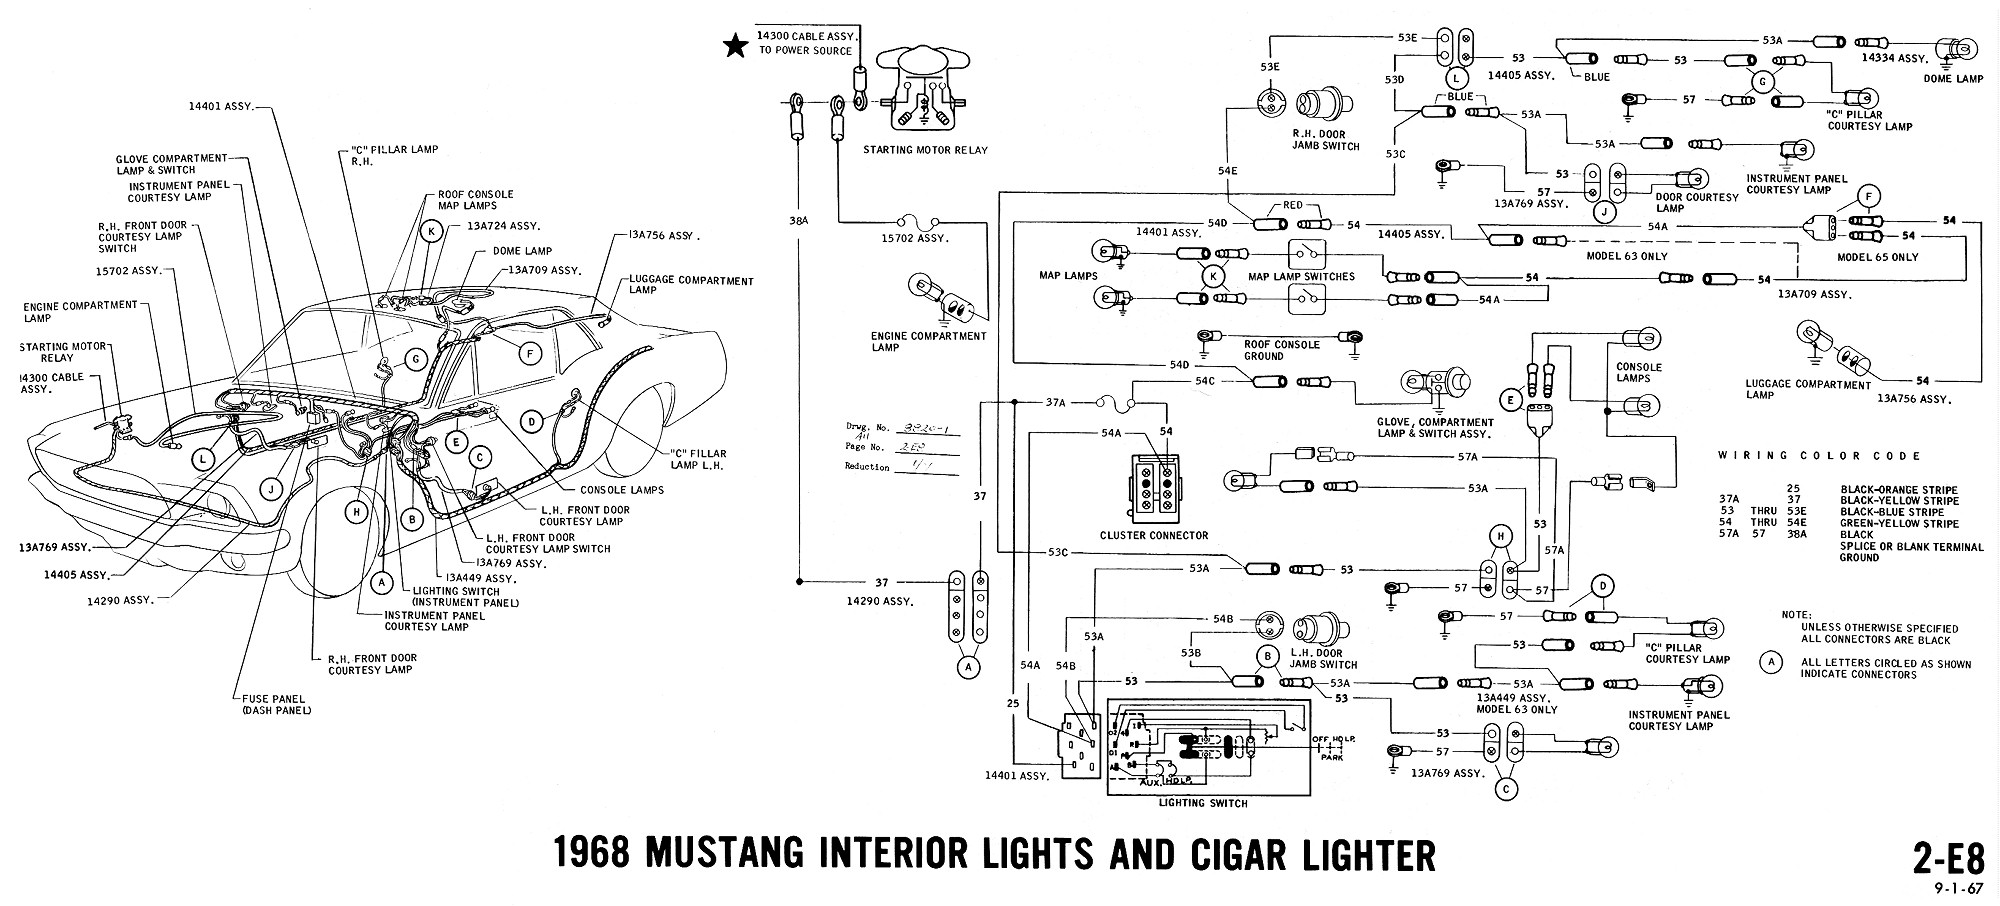 2001 pontiac firebird suspension diagram